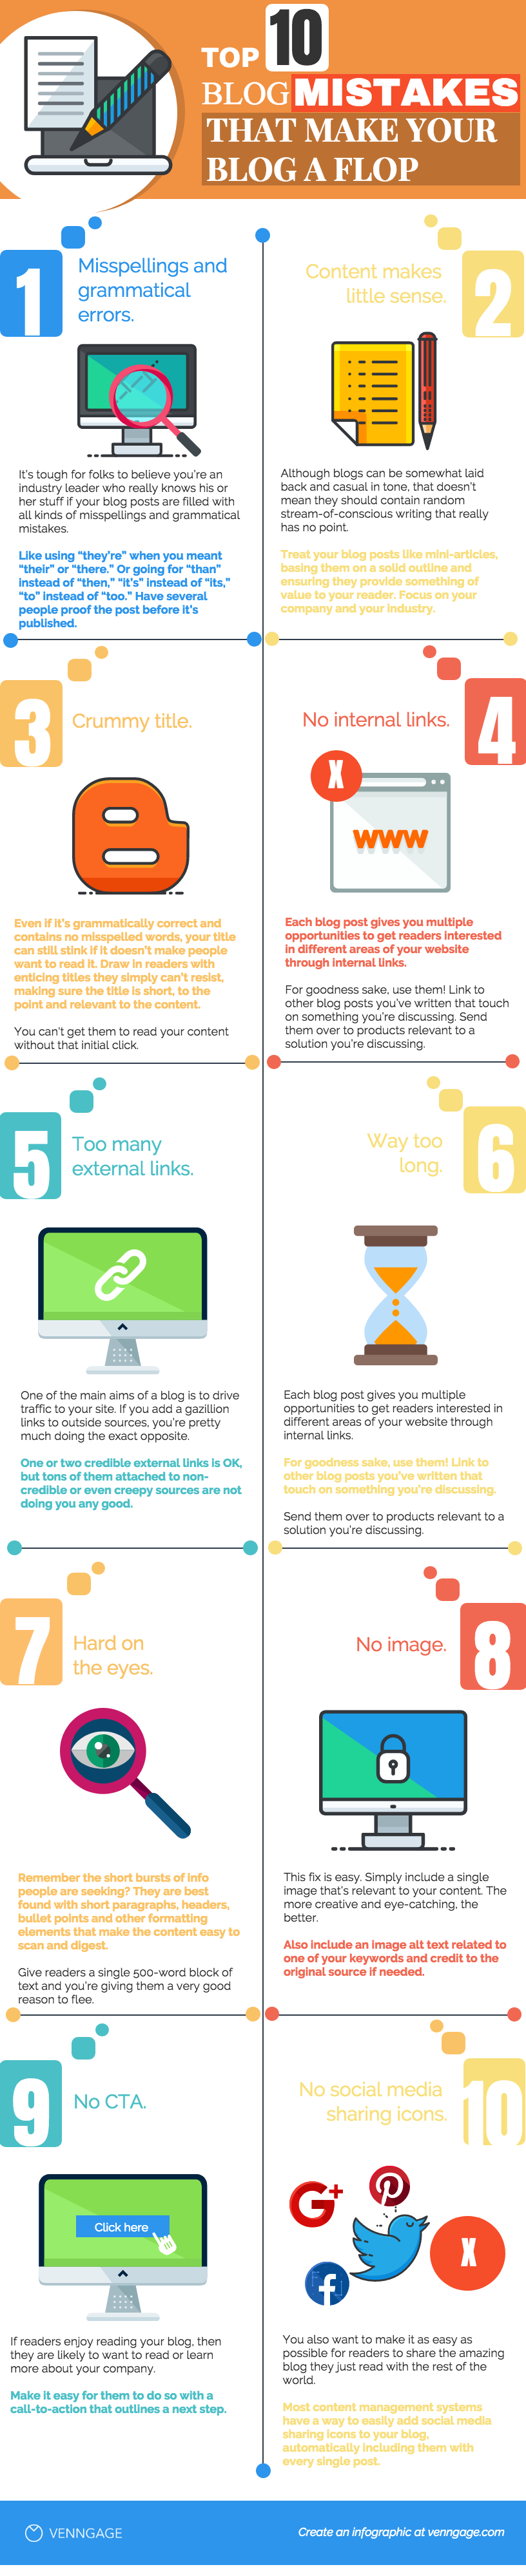 Top-10-blog-mistakes-that-make-your-blog-a-flop-Venngage-Infographic.png